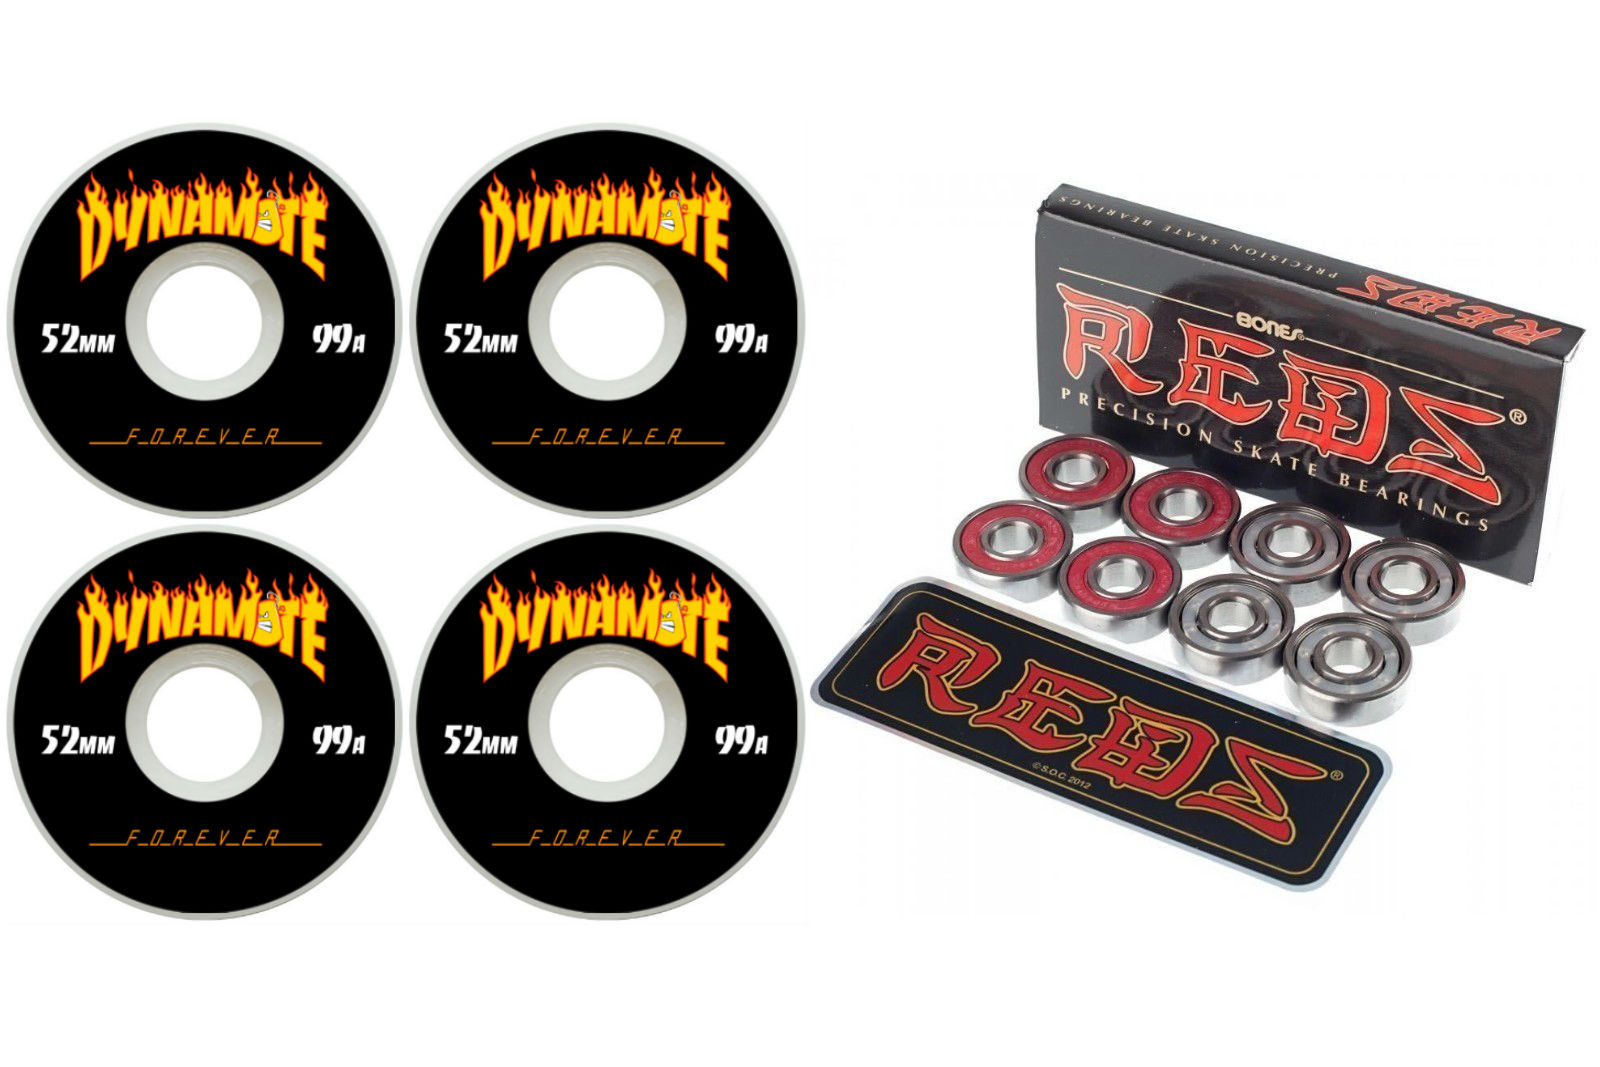 Dynamite Forever 52mm Thrashed Skateboard Wheels with Bones Reds Bearings FREE POST